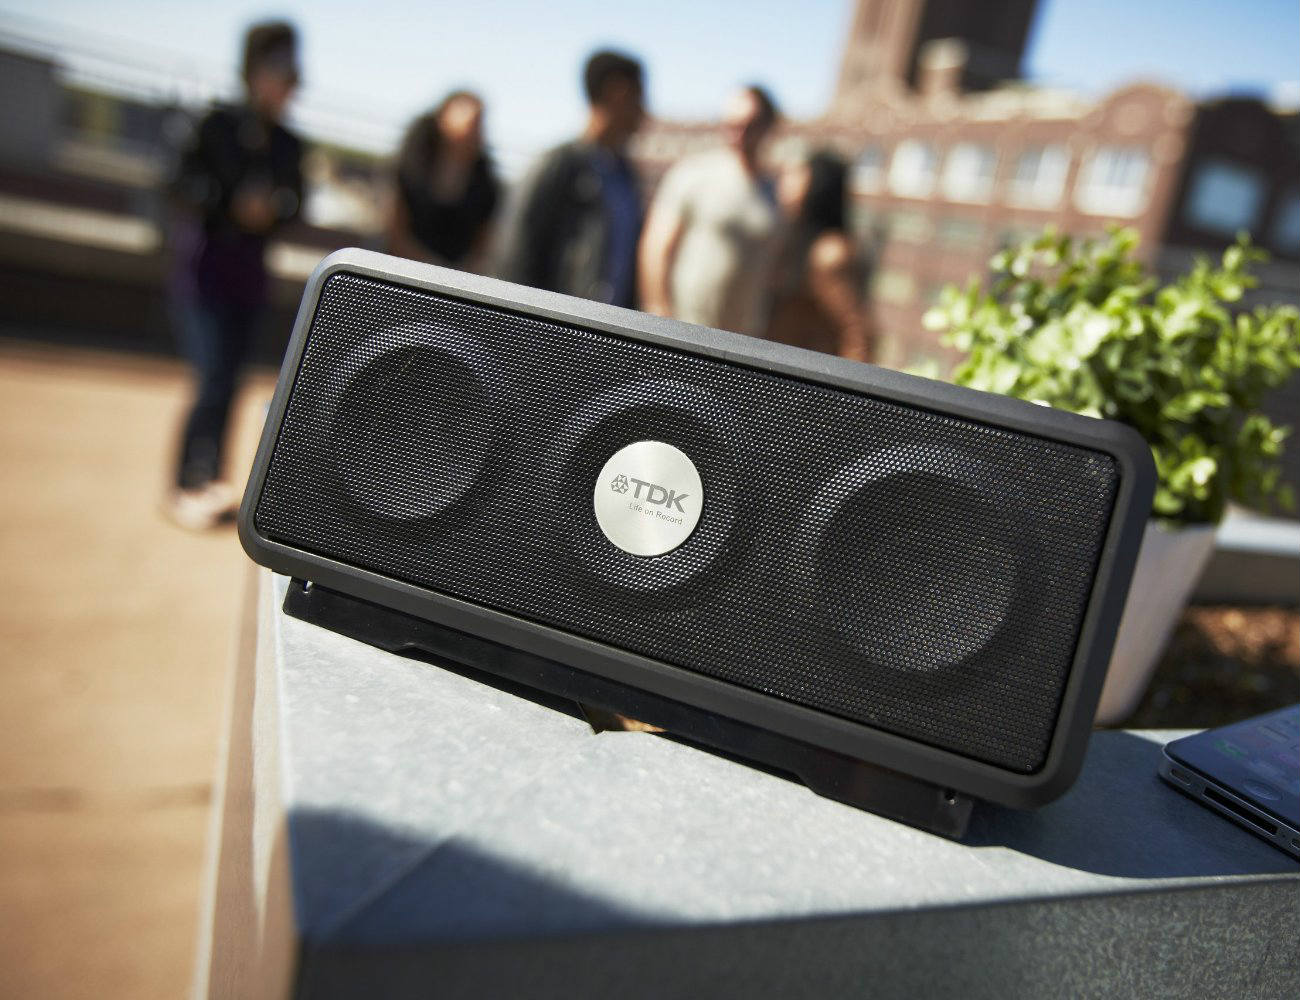 a33-wireless-weatherproof-speaker-01